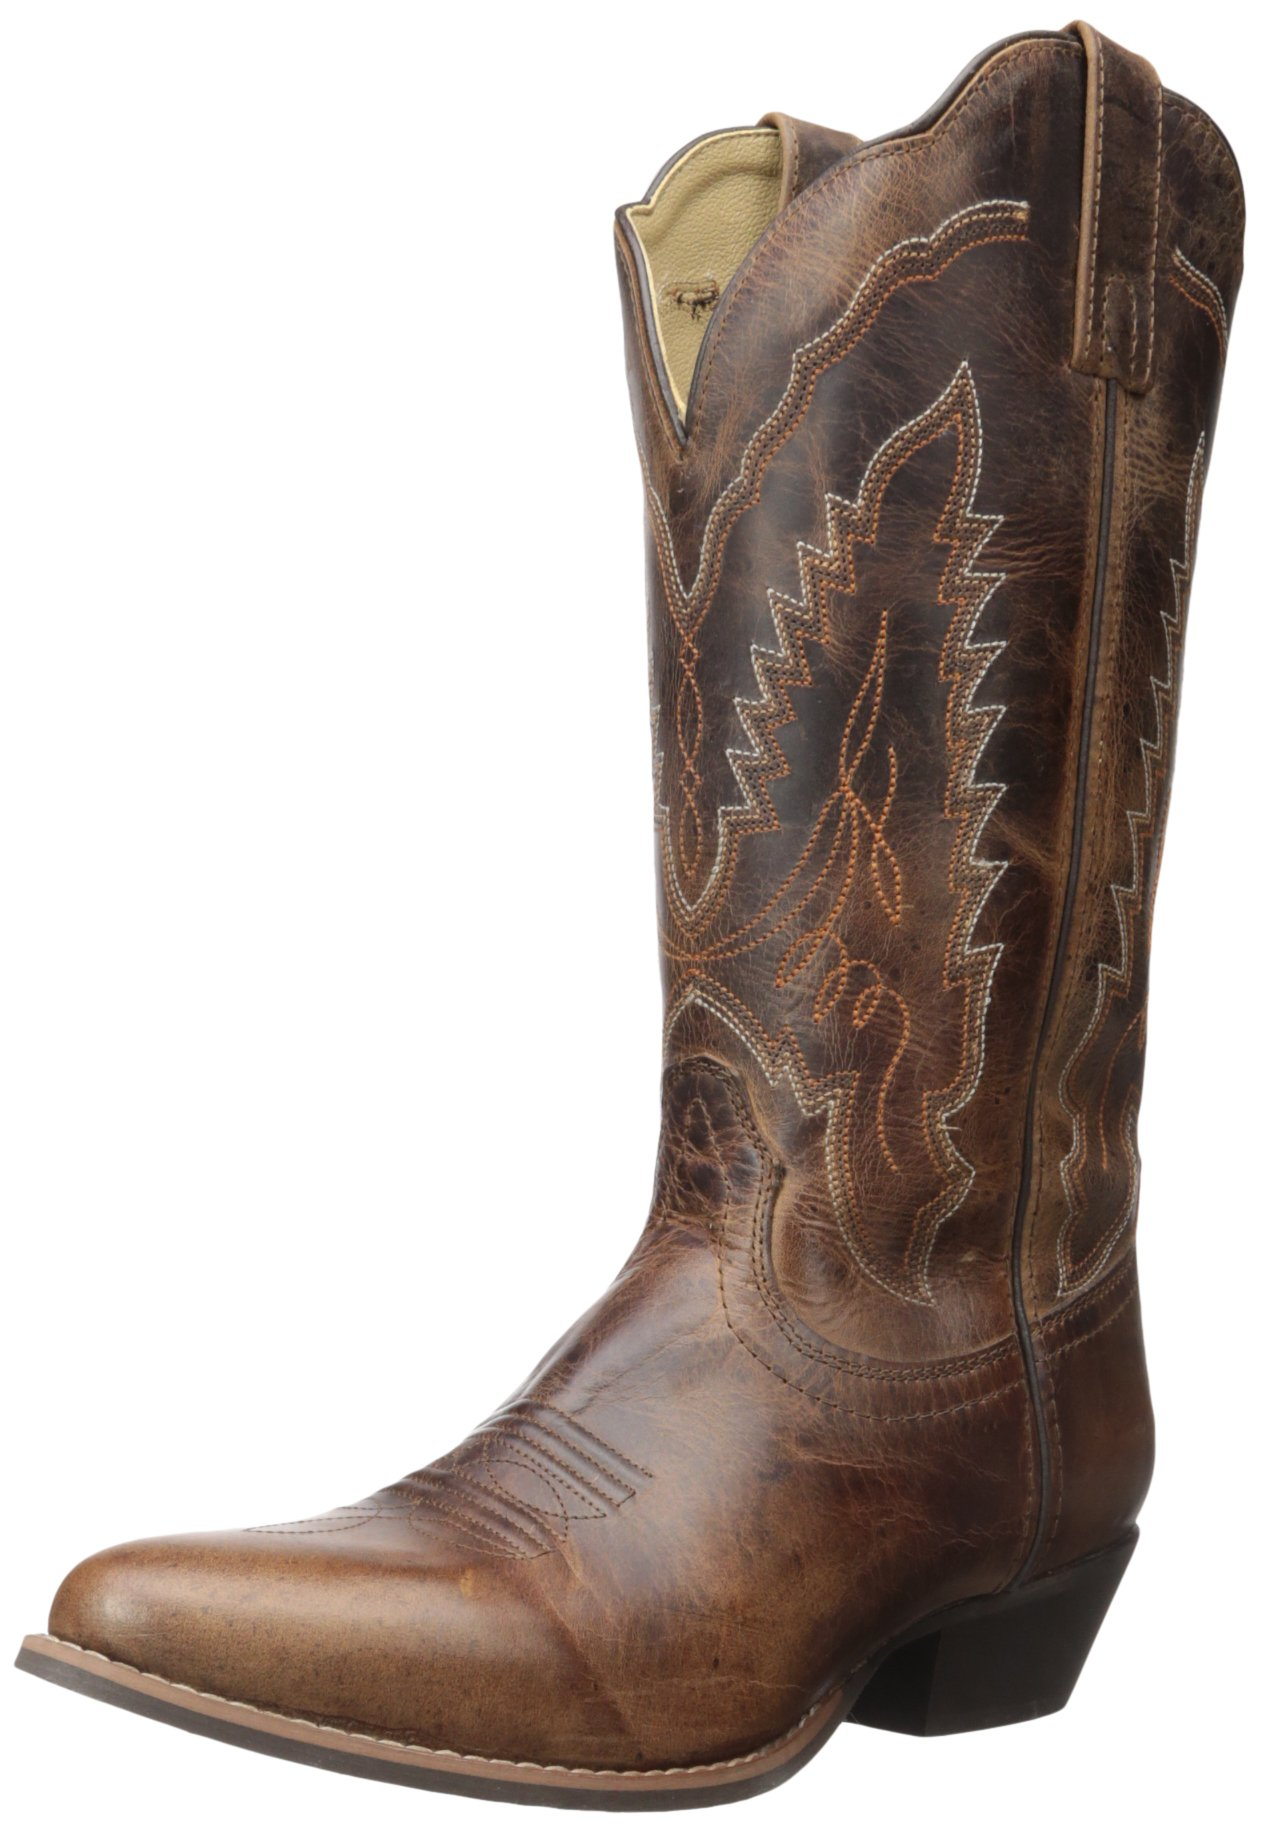 Smoky Mountain Women's Amelia Cowgirl Boot Round Toe Brown 7 M US